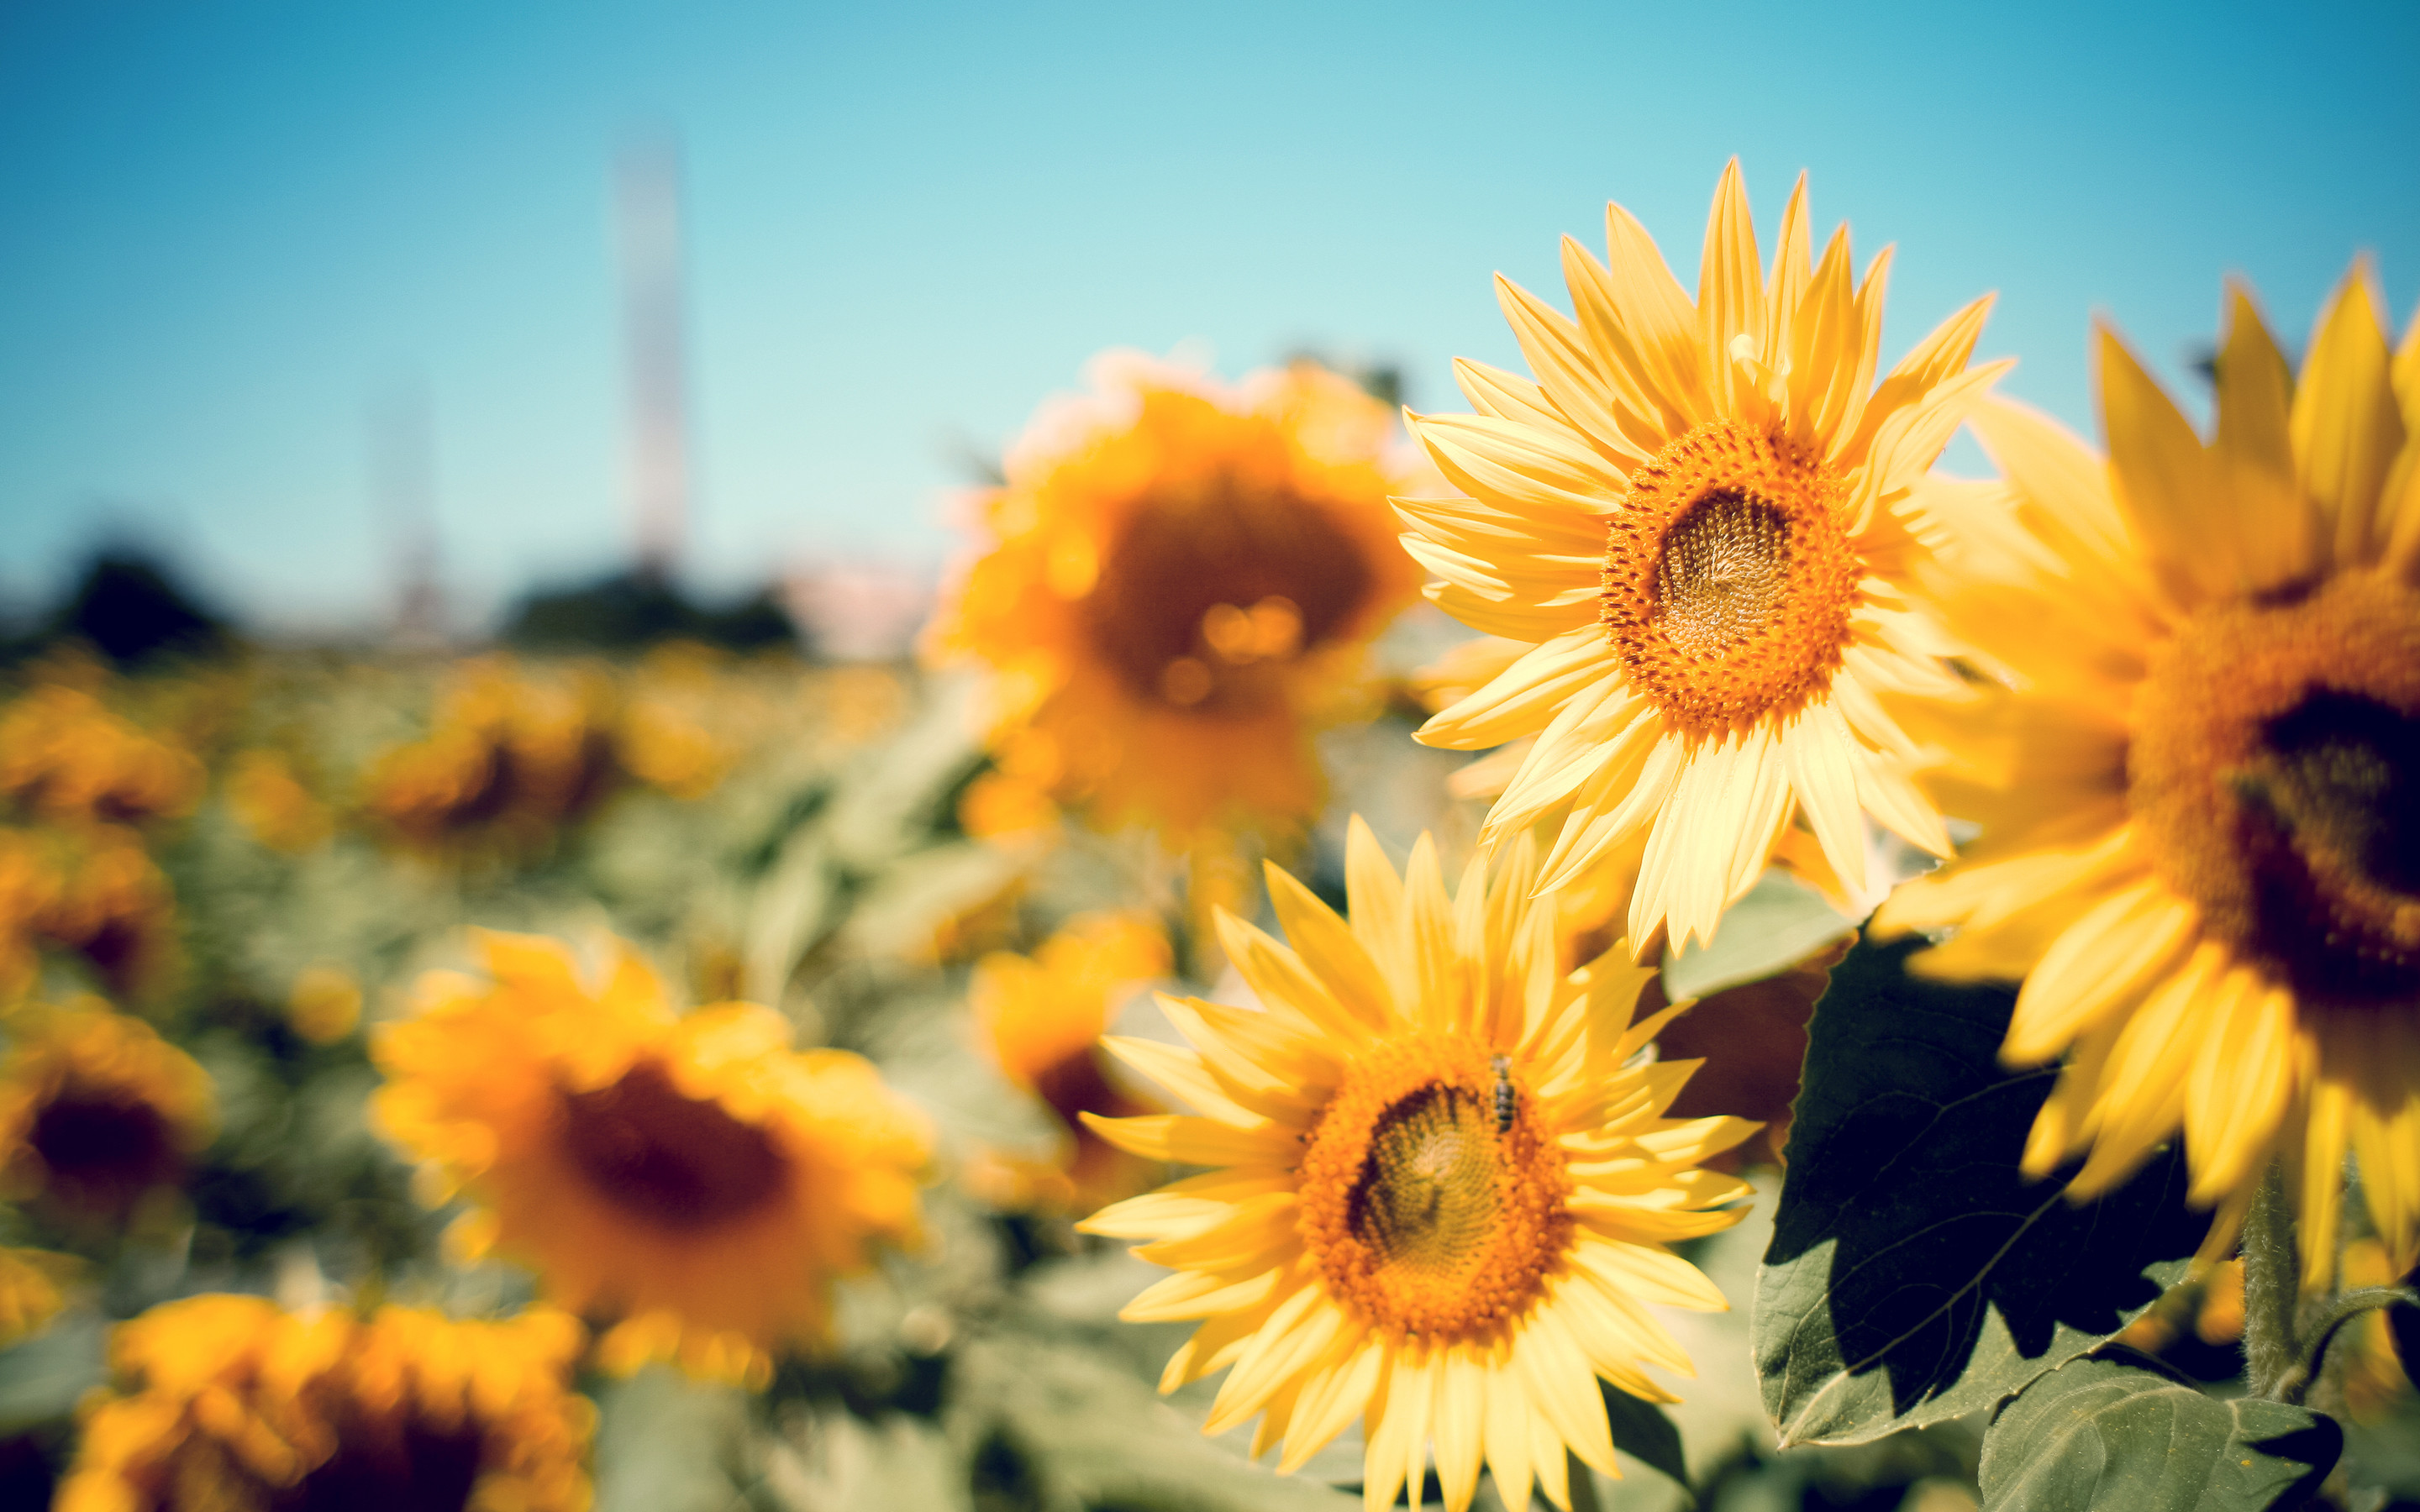 Sunflower Wallpapers 72+ images